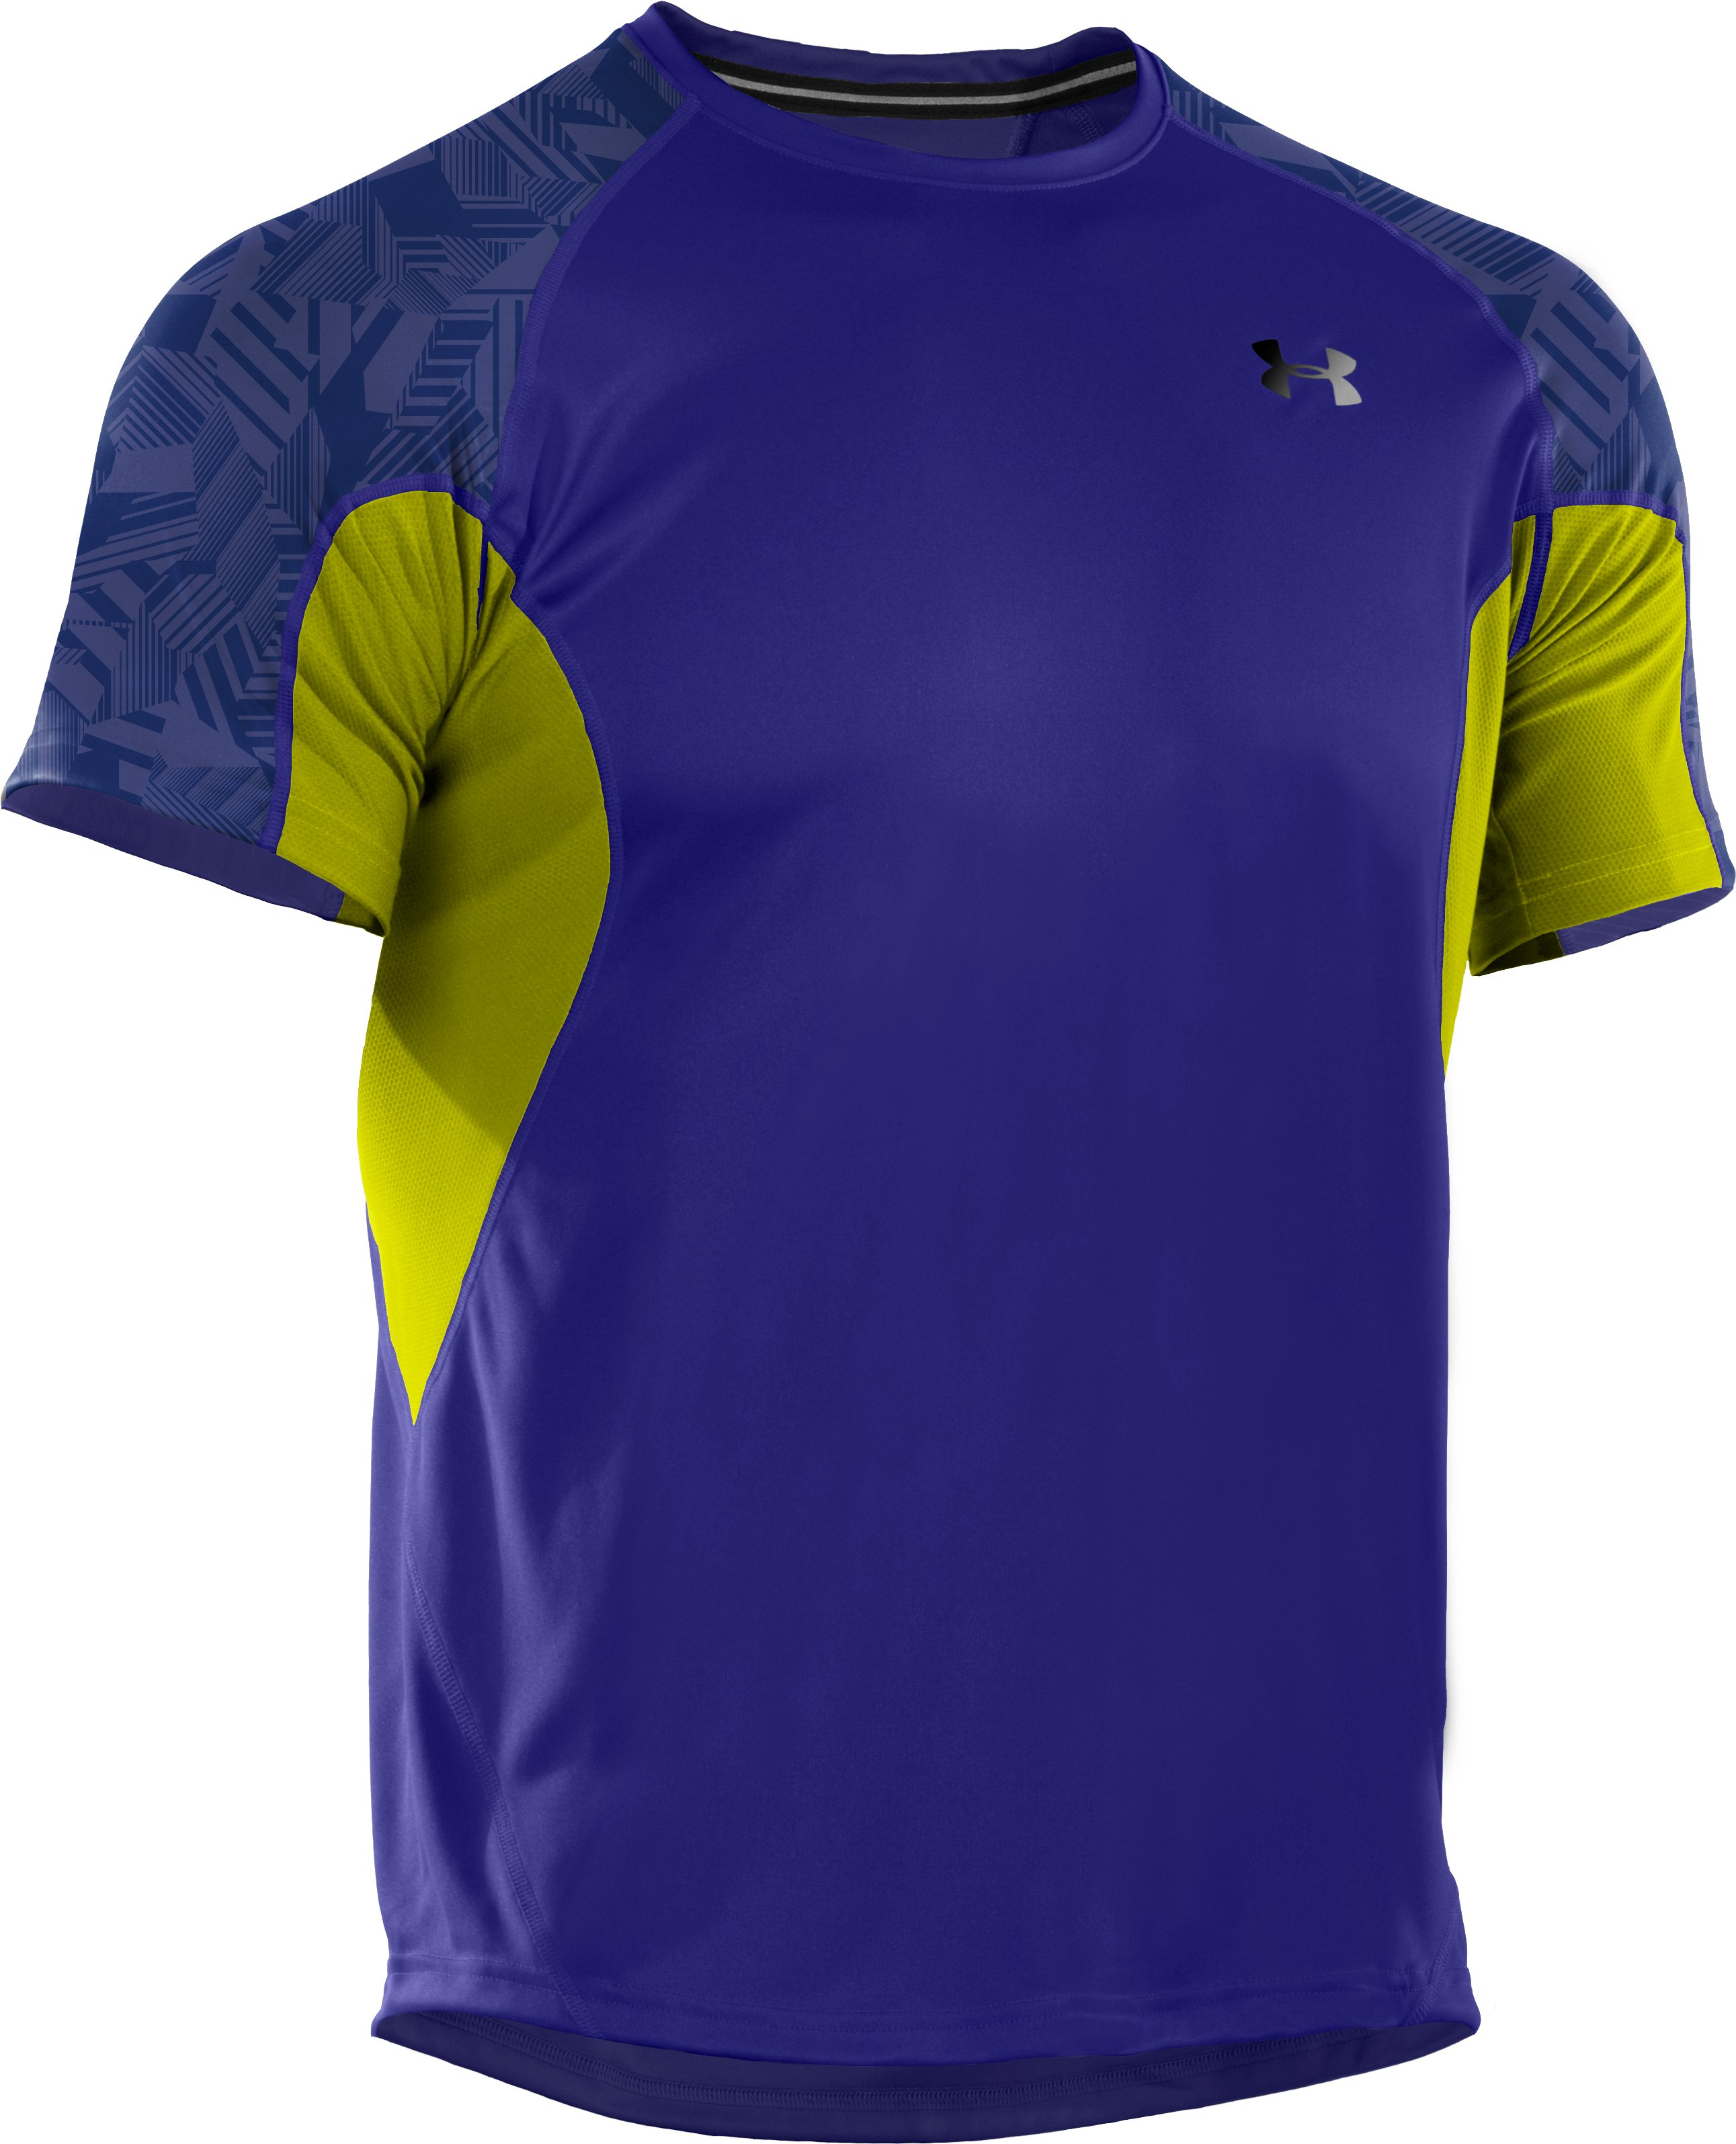 Men's coldblack® Engage Run T-Shirt, Caspian